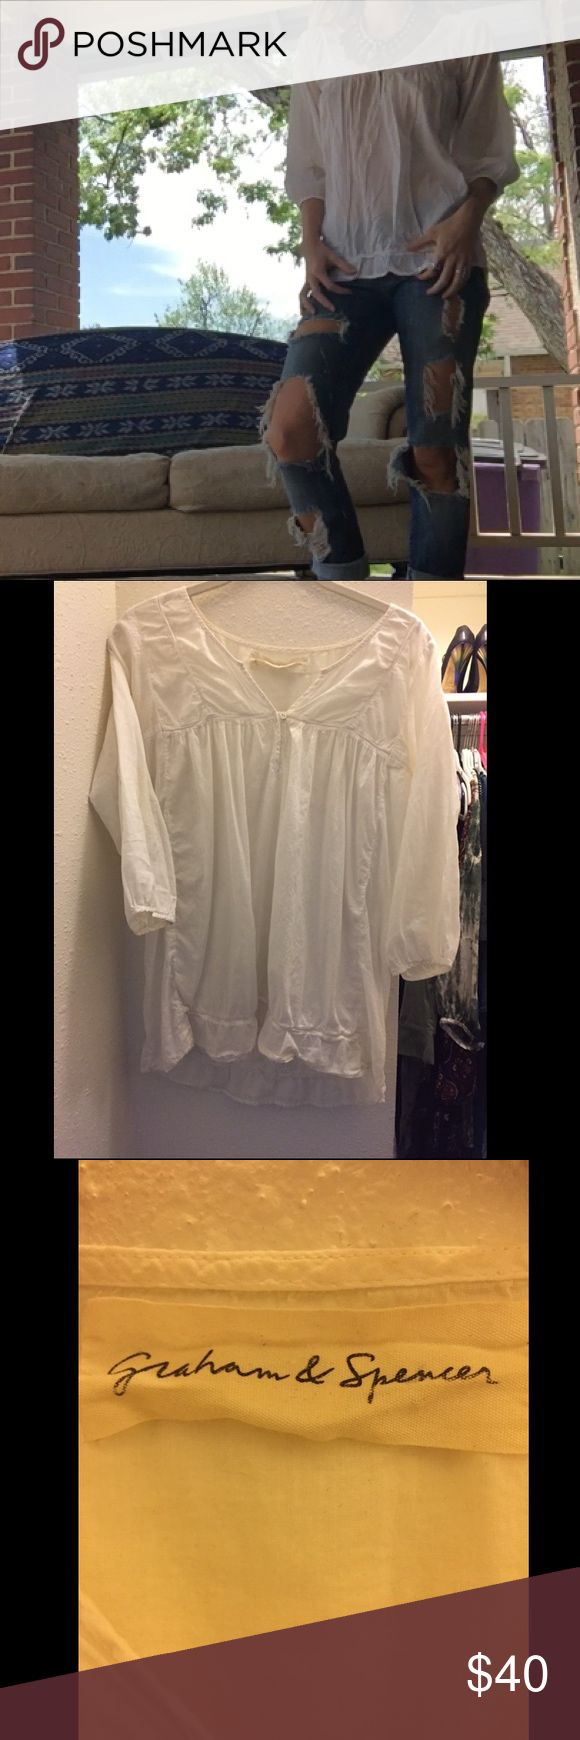 Graham & Spencer white babydoll tunic S/M babydoll tunic. This top is laced in beautiful details and has dreamy day time vibes. Gently worn with no damage. graham & spencer Tops Tunics